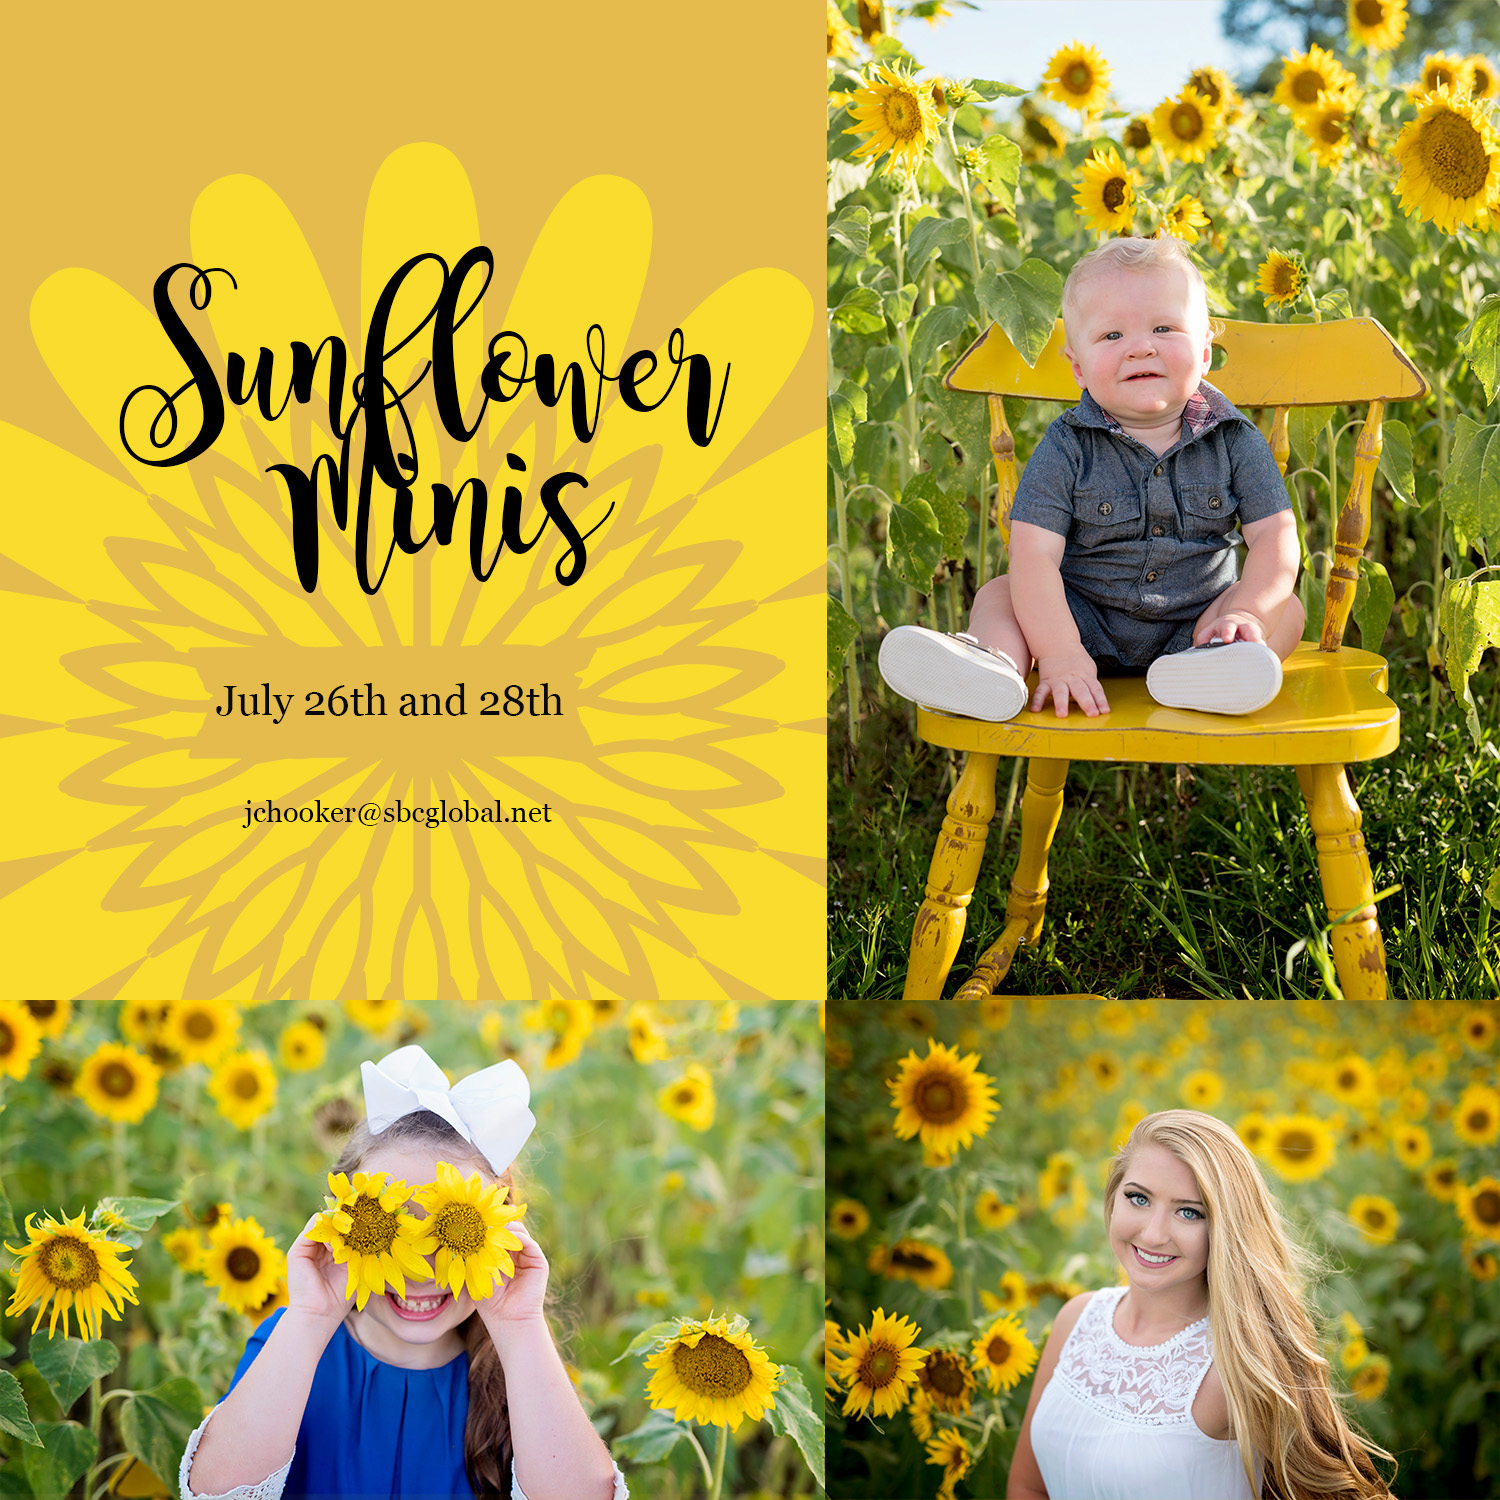 sunflowers-5x5.jpg